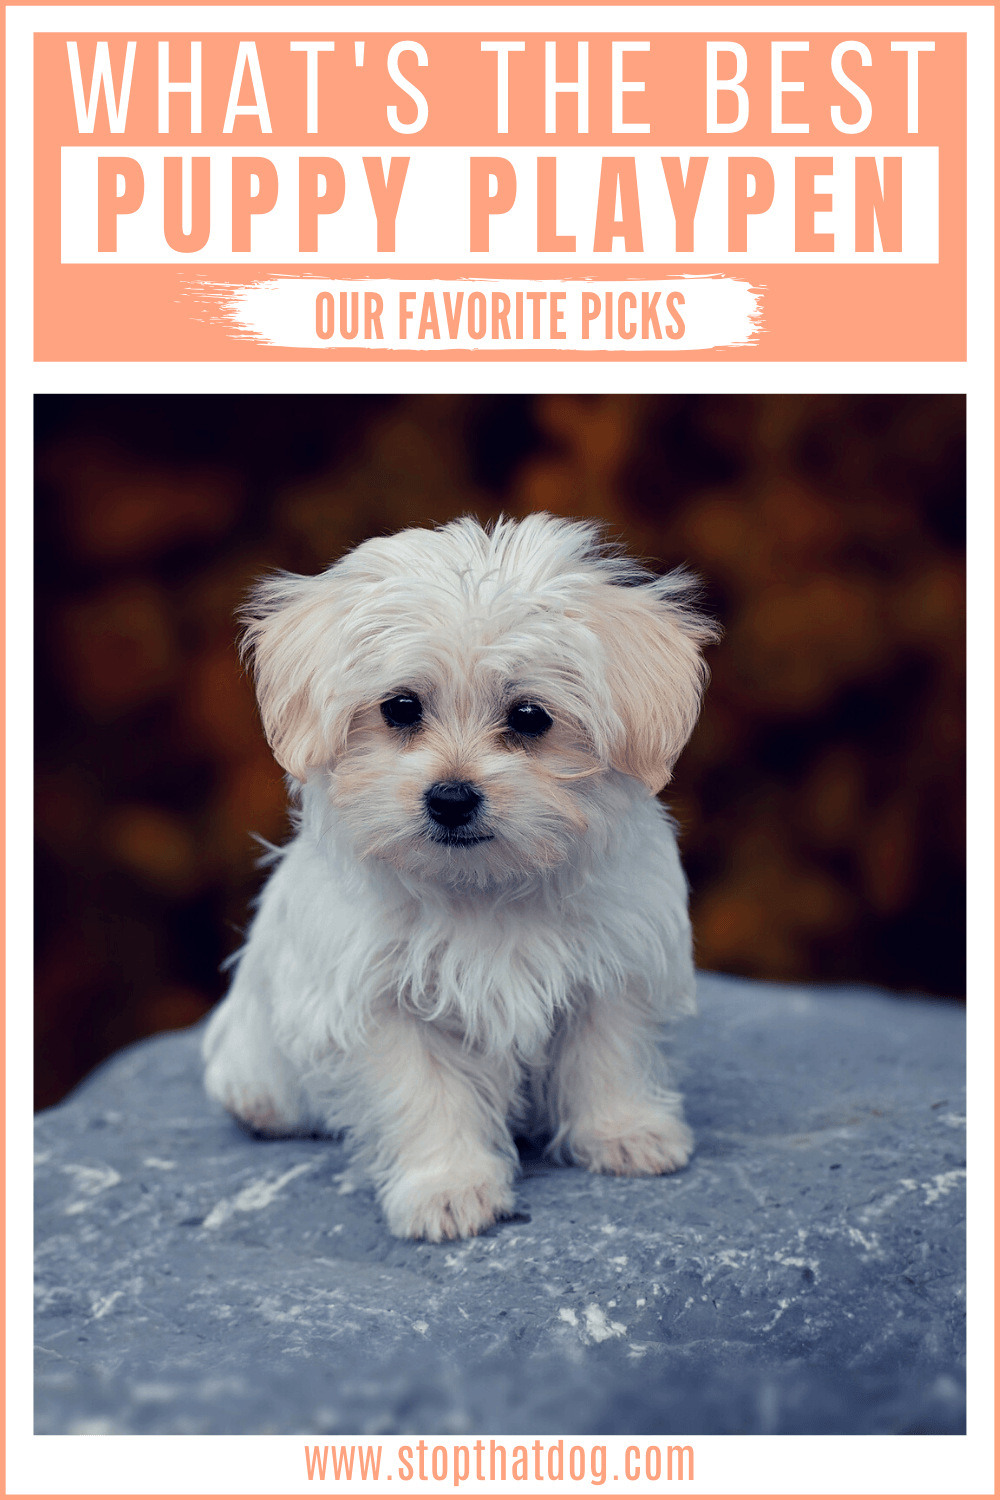 What Are The Best Puppy Playpens In 2020?